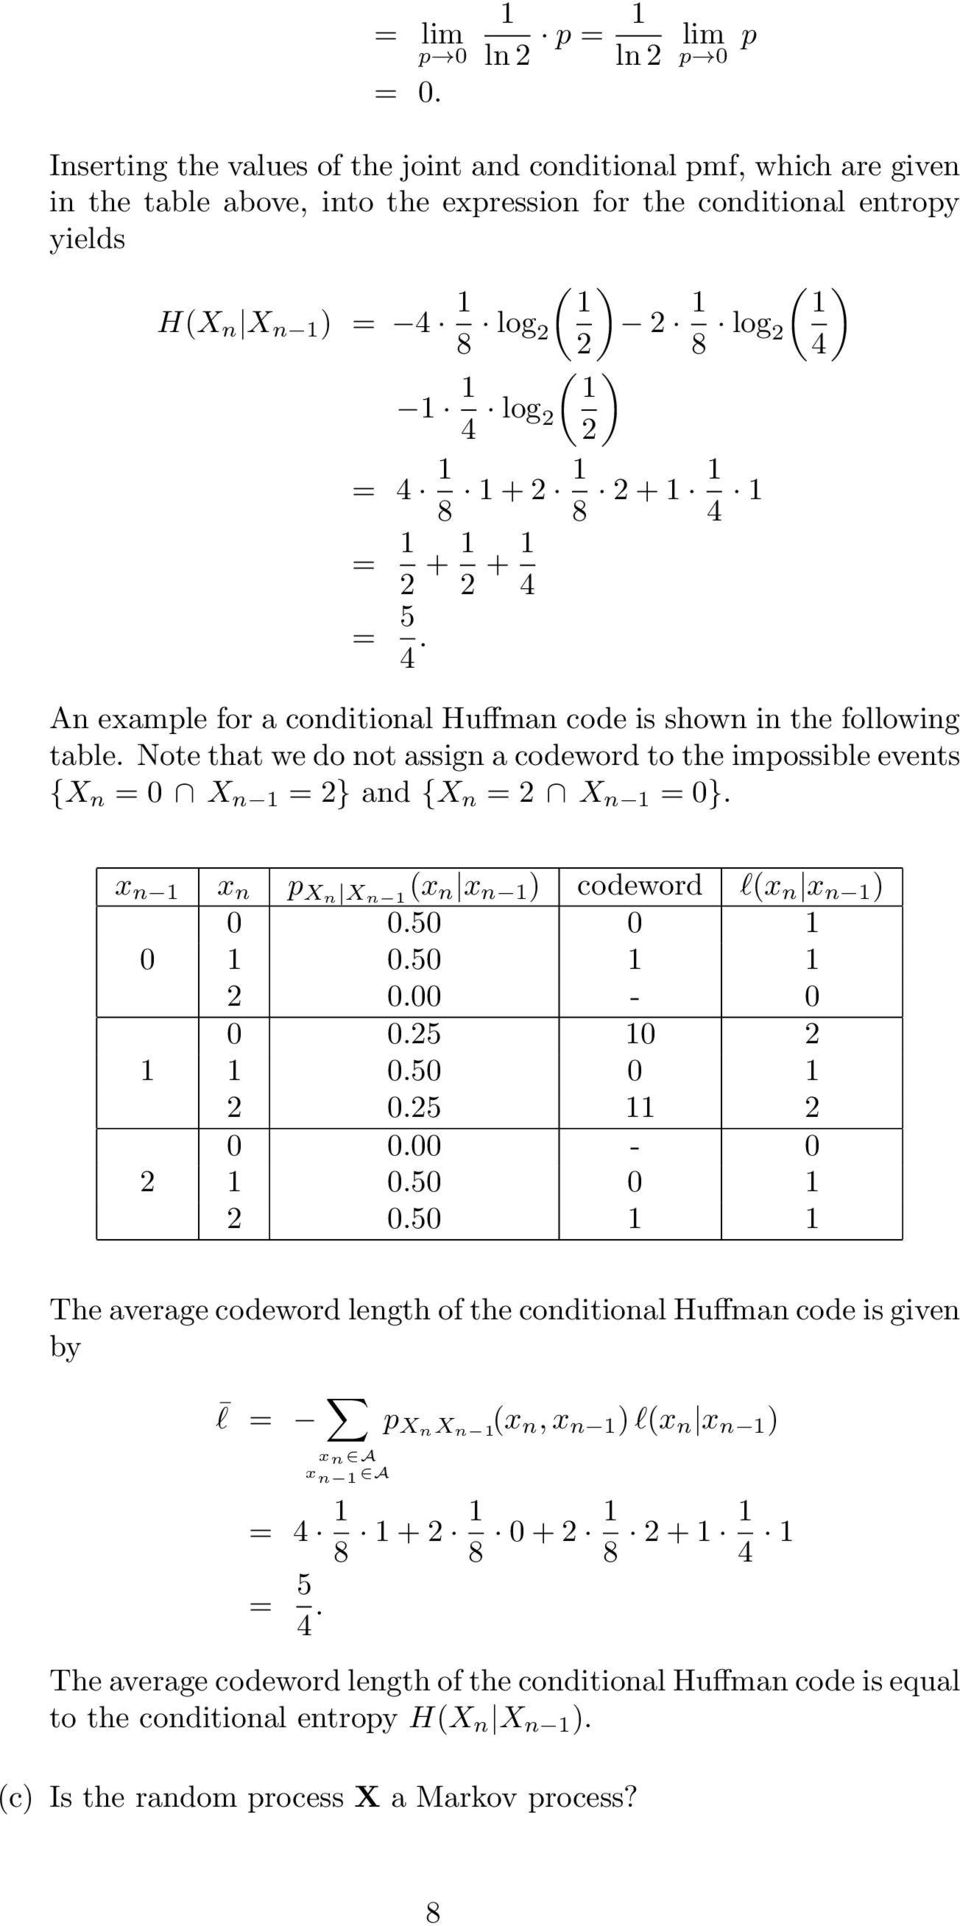 8 log 4 ( ) 4 log = 4 8 + 8 + 4 = + + 4 = 5 4. An example for a conditional Huffman code is shown in the following table.